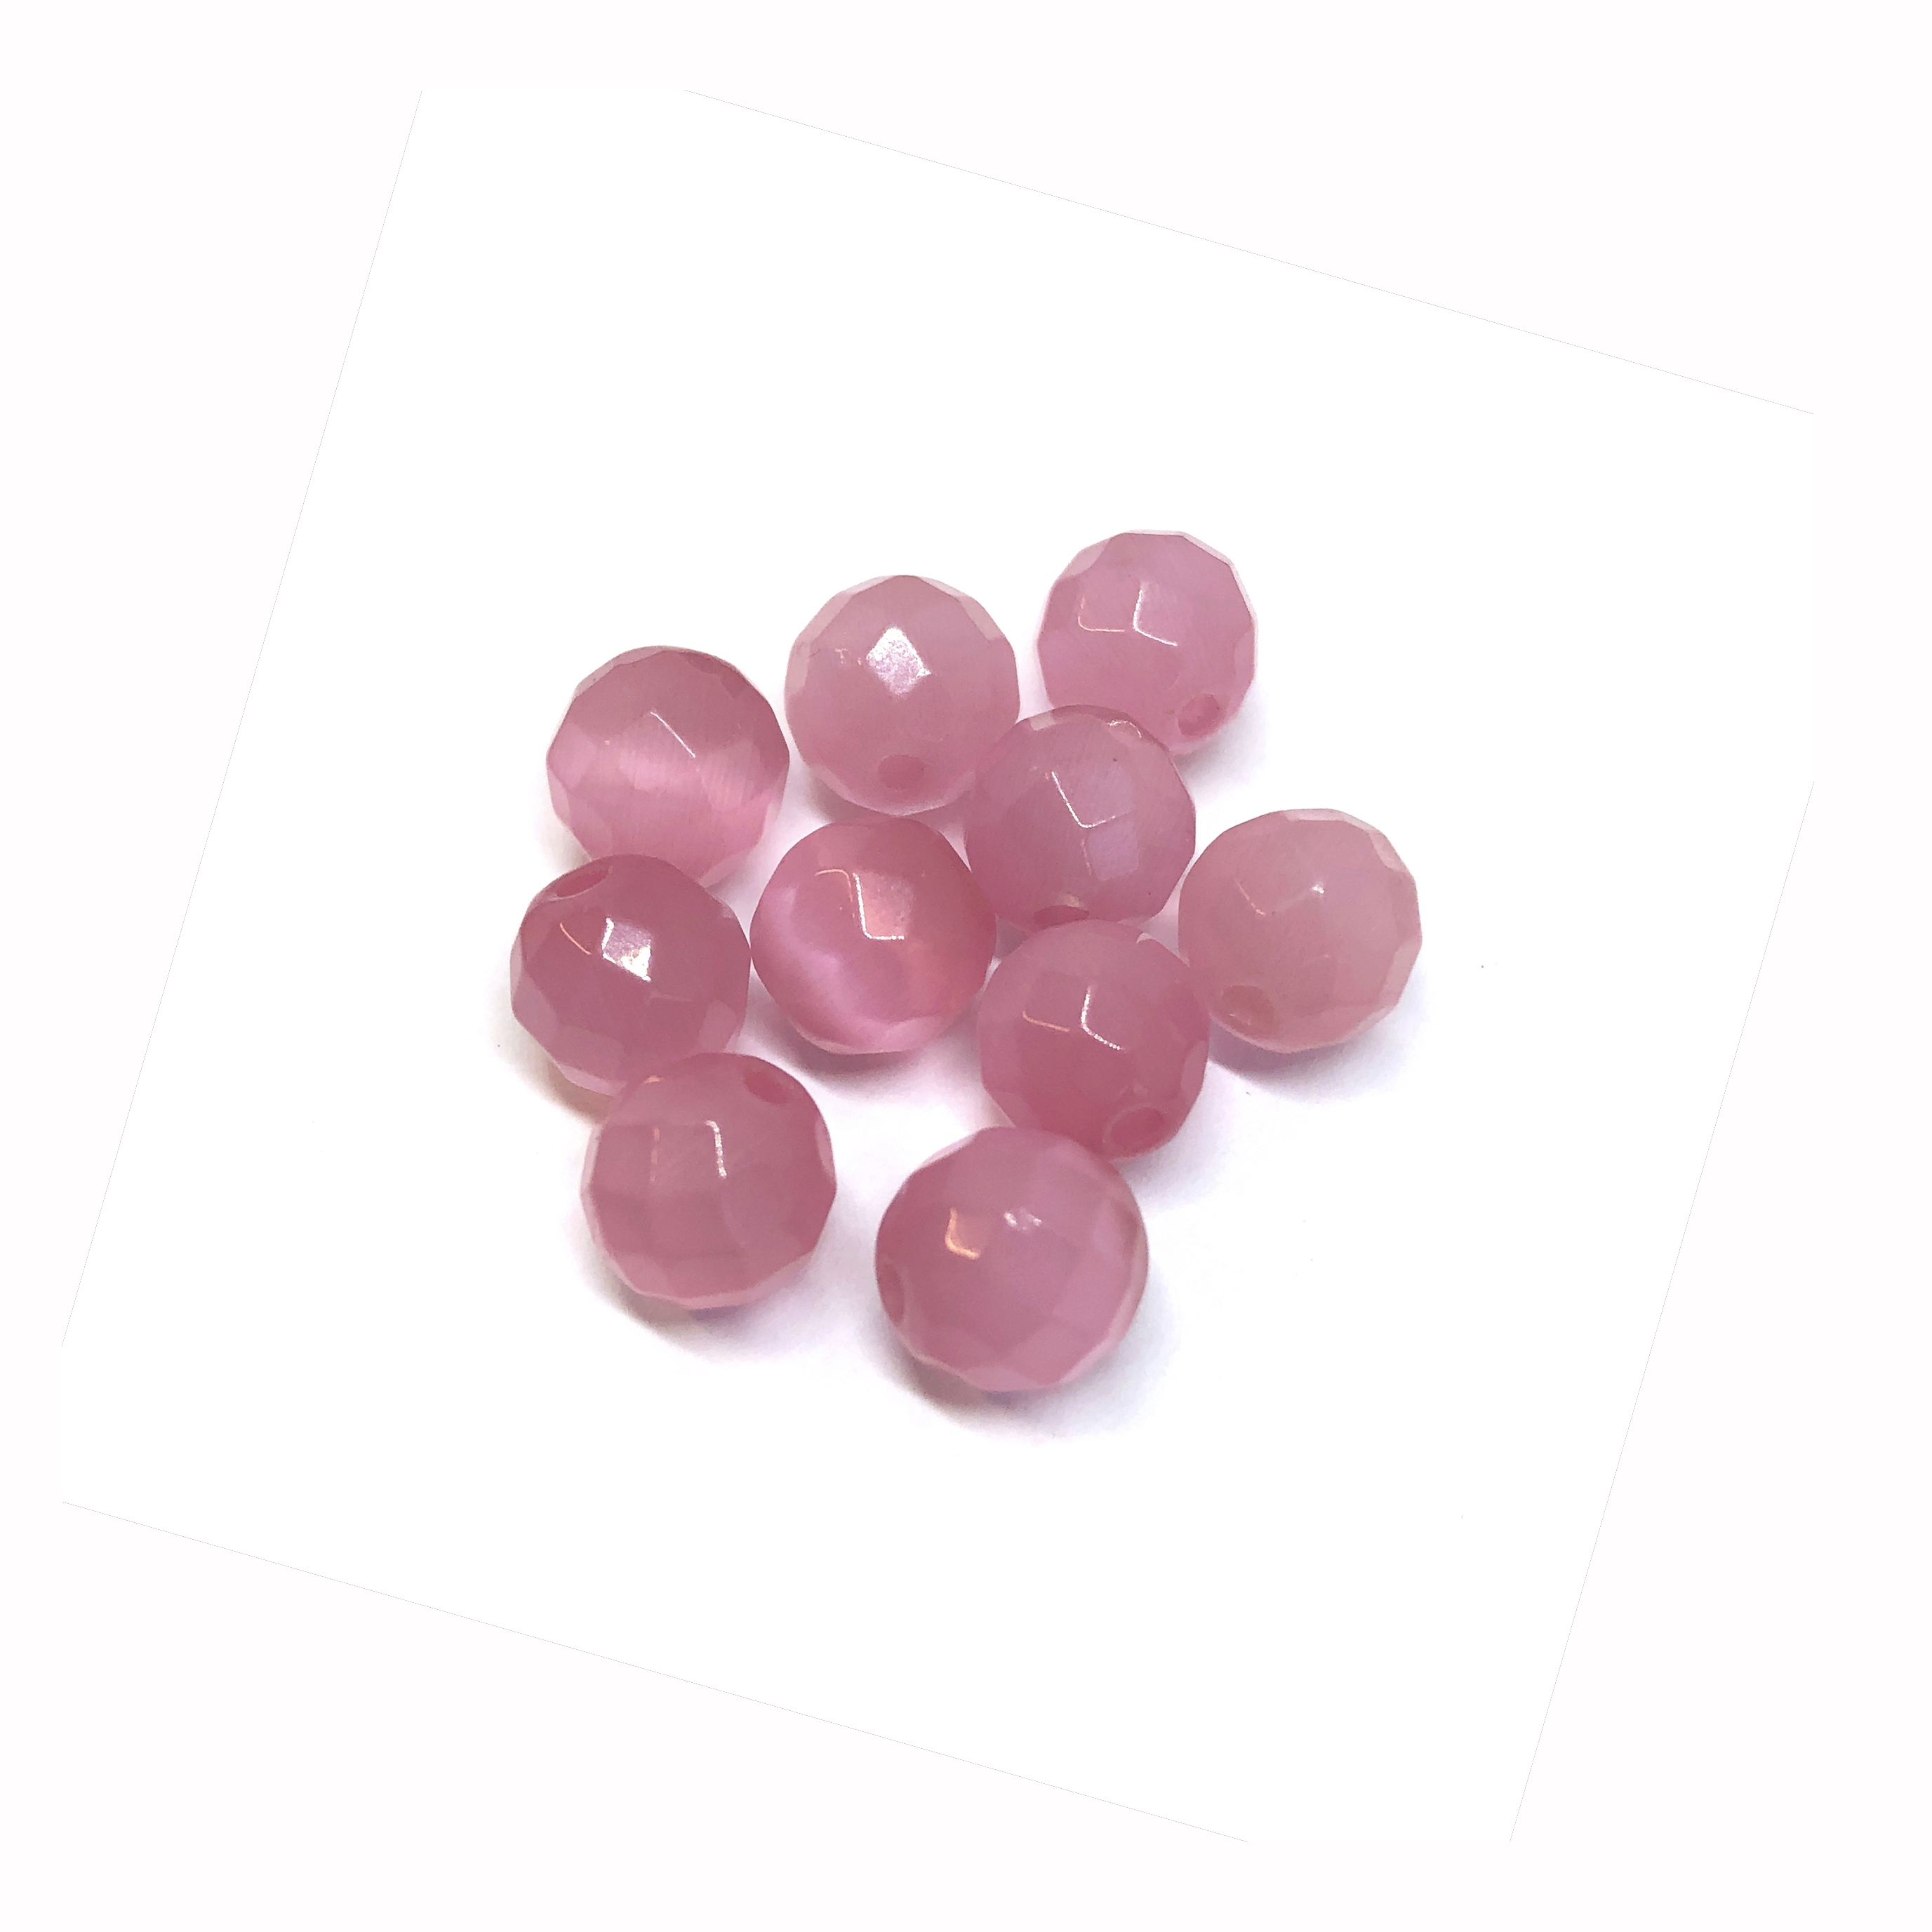 Pink cat's eye beads, glass beads, fiber optic glass, glass, cat's eye, pink beads, cabochon, round, glossy shine, faceted beads, US made, B'sue Boutiques, jewelry stone, 6mm, 09732